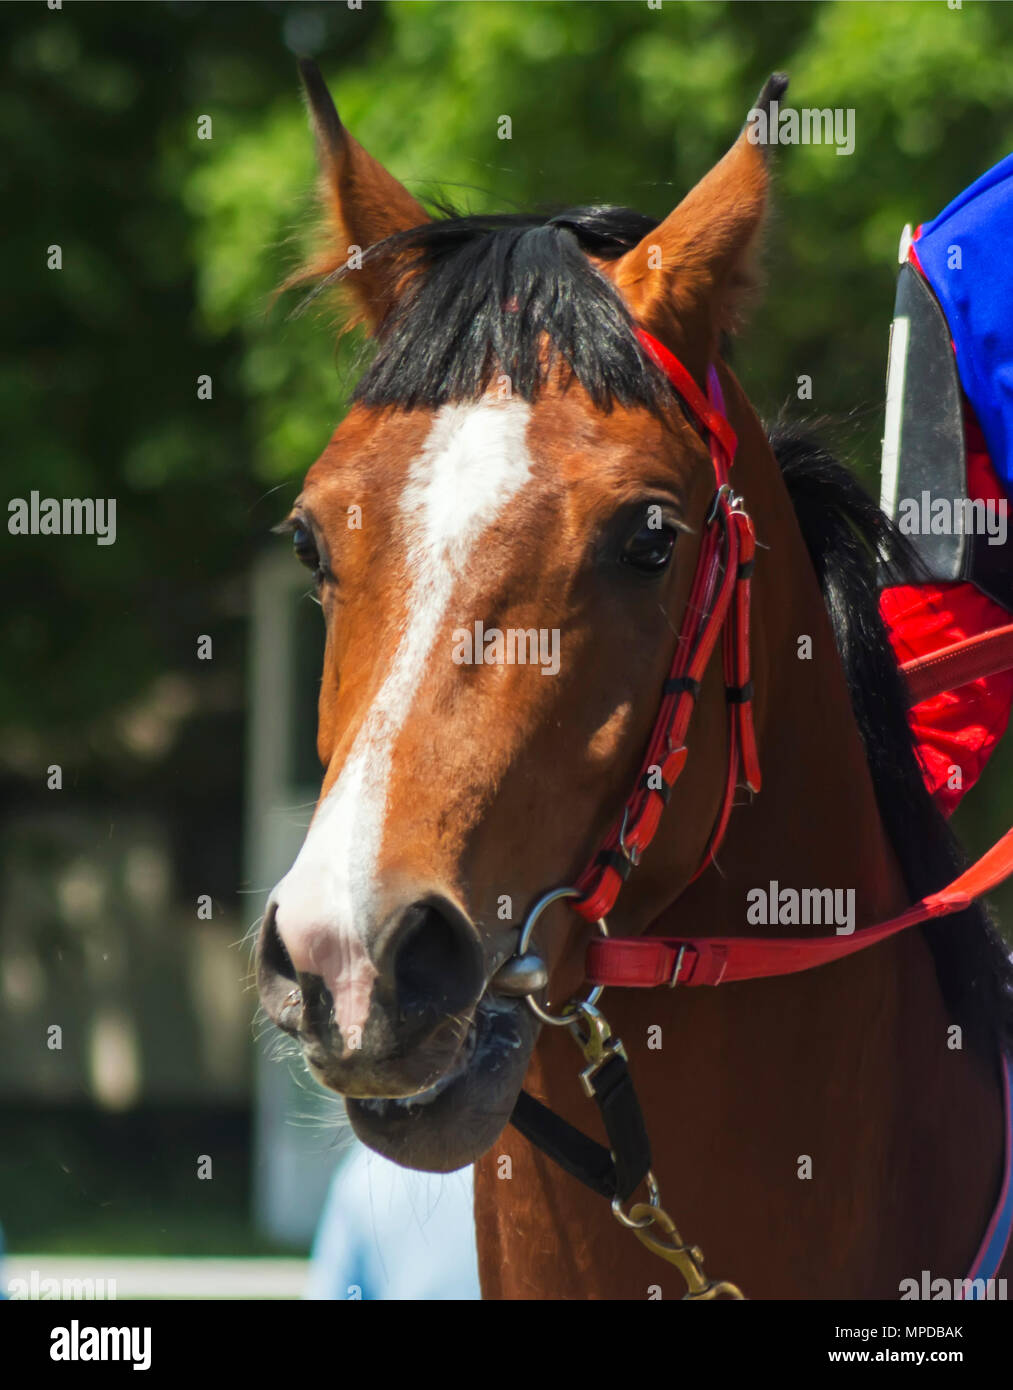 Portrait of a thoroughbred horse after horse racing. - Stock Image